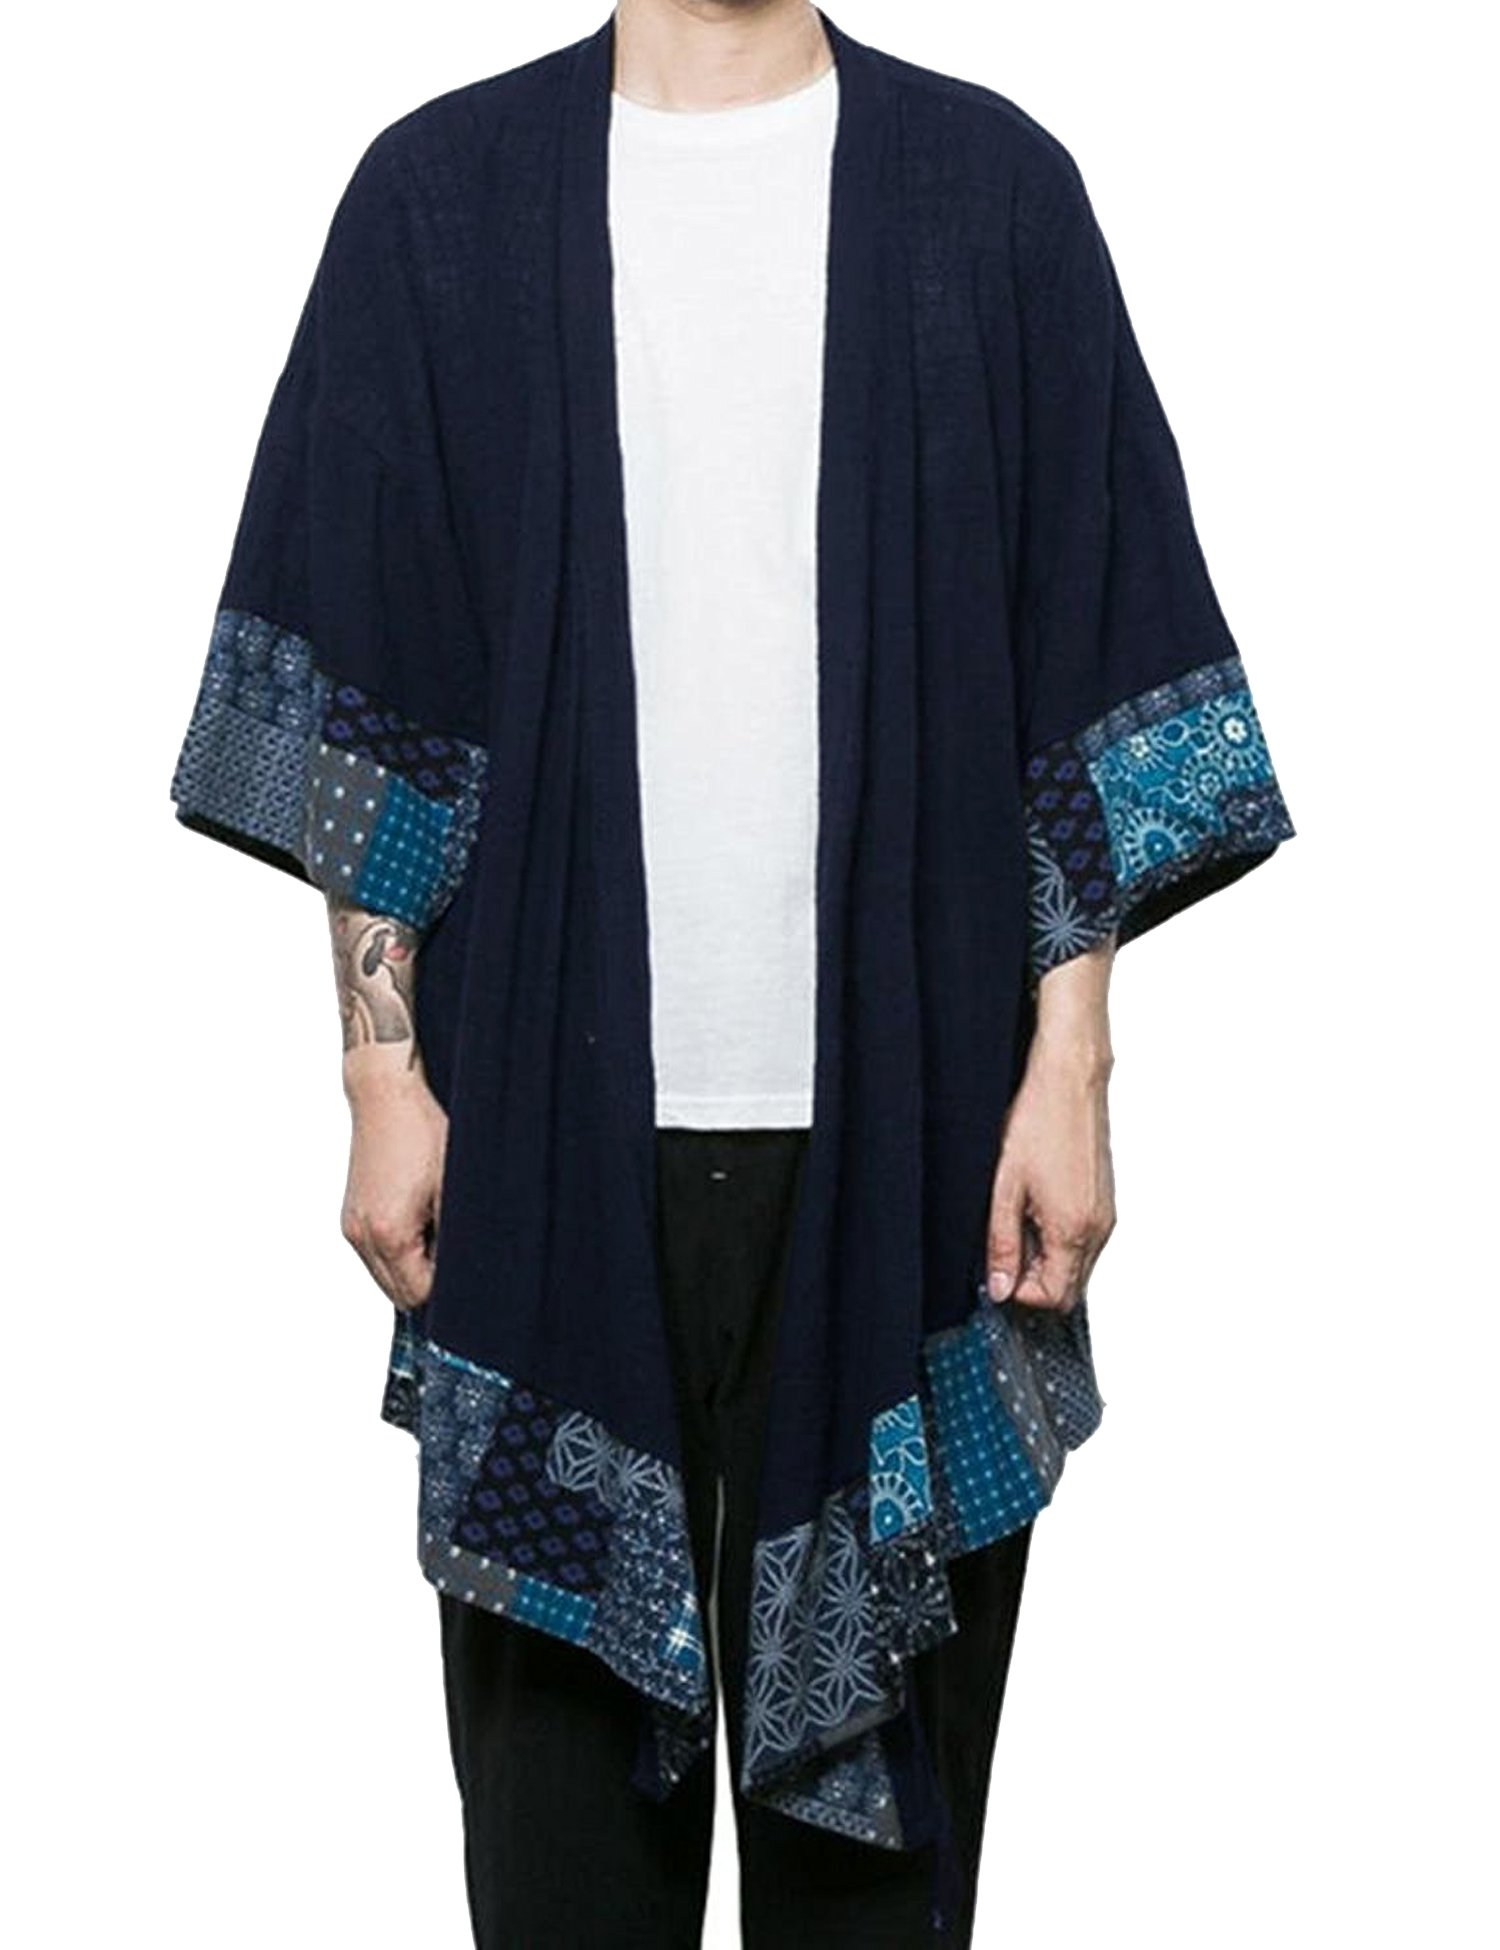 COOFANDY Men's Cardigan Lightweight Cotton Sweater Kimono Style Cloak Open Front Cape, Navy Blue, XX-Large